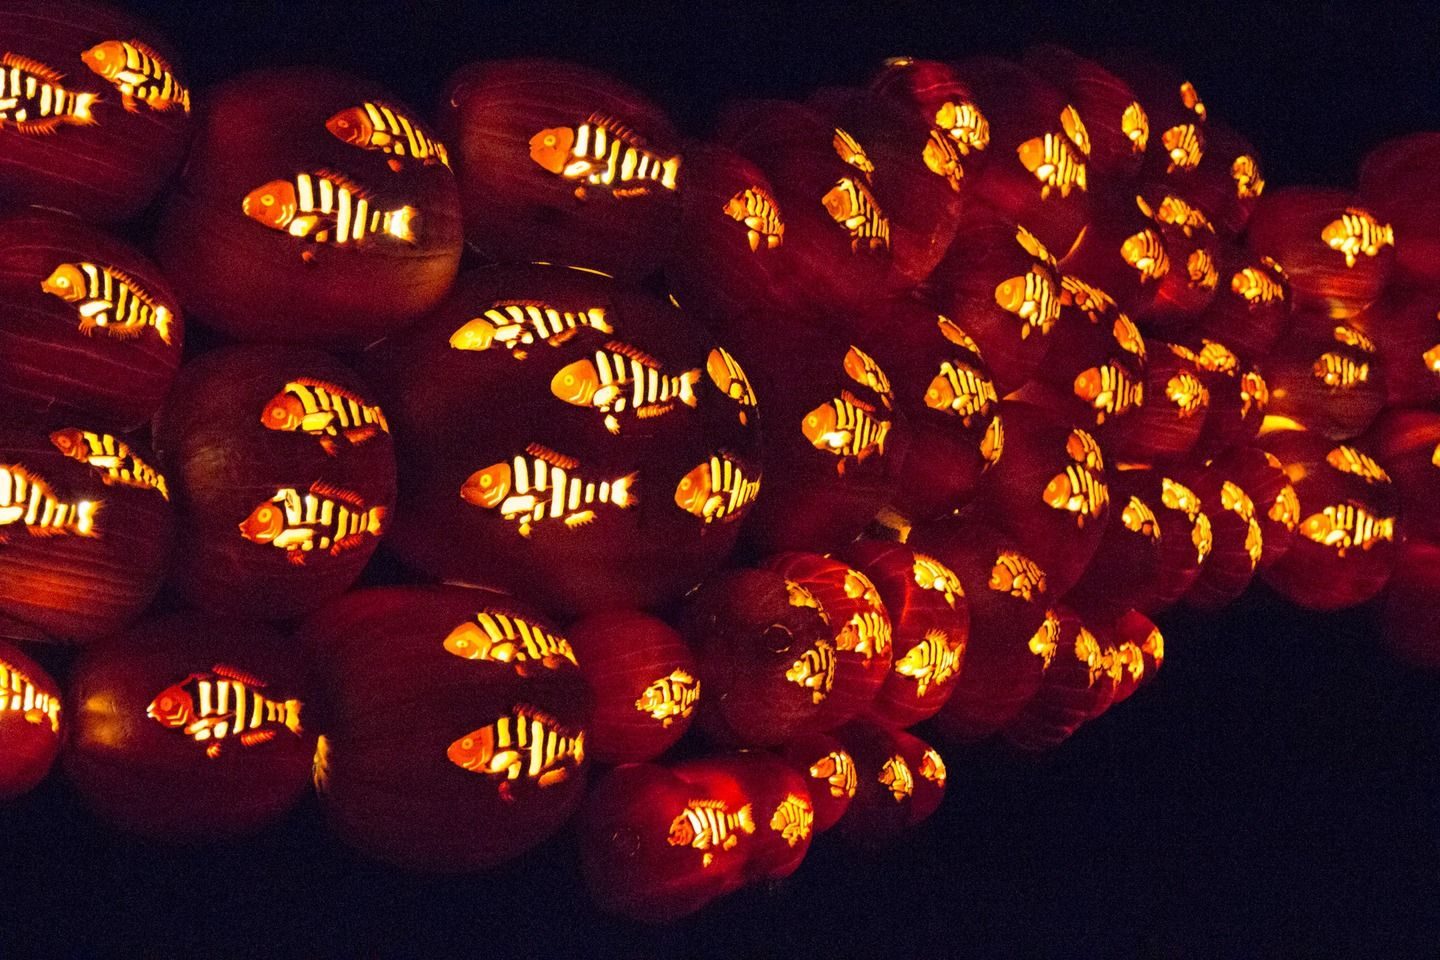 5 000 Carved Pumpkins Twinkle At Rise Of The Jack O Lanterns